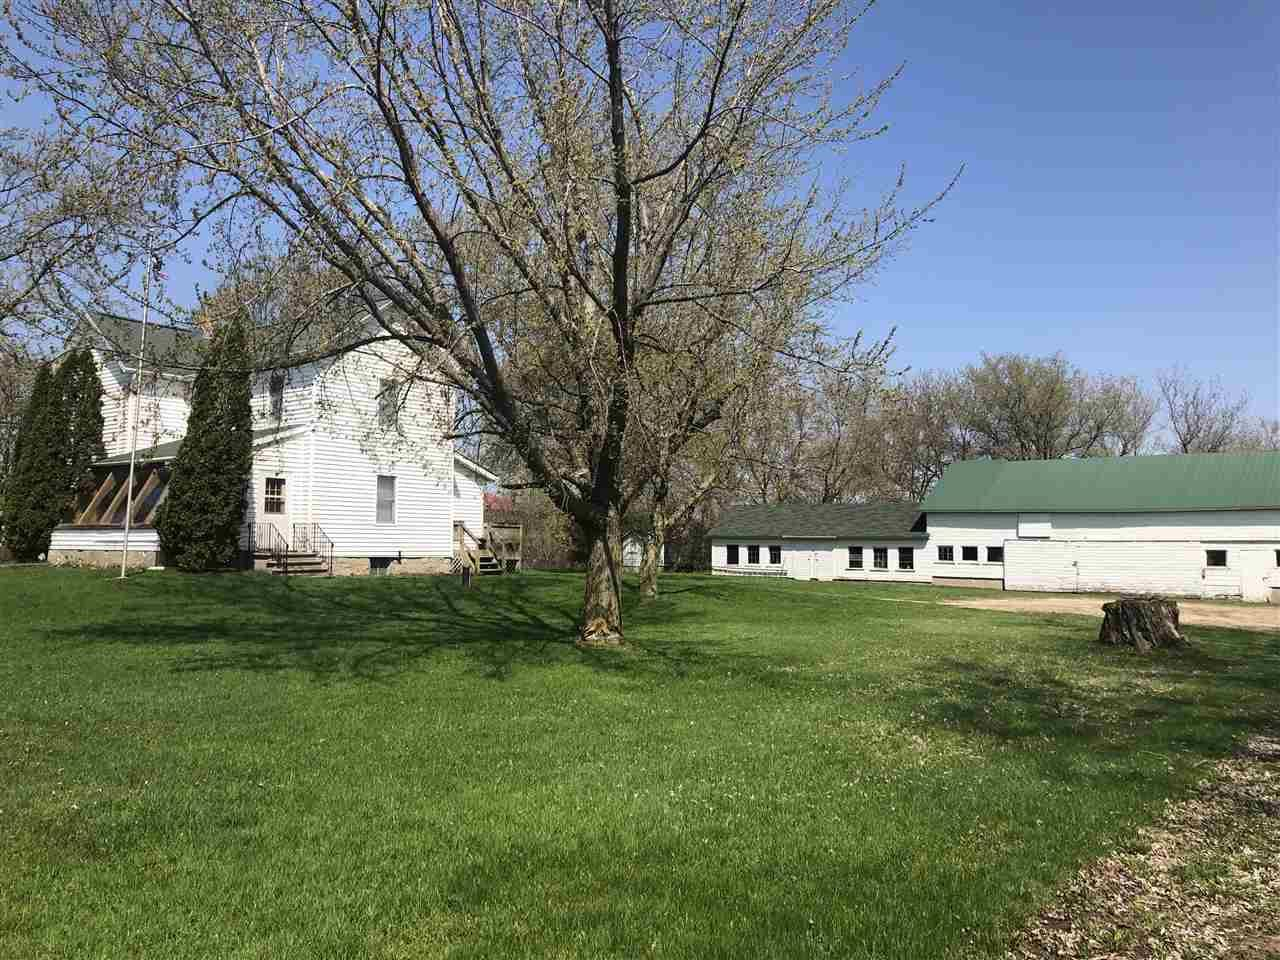 W6783 County Road OOO, Fond du Lac, WI 54937 - MLS#: 1856506